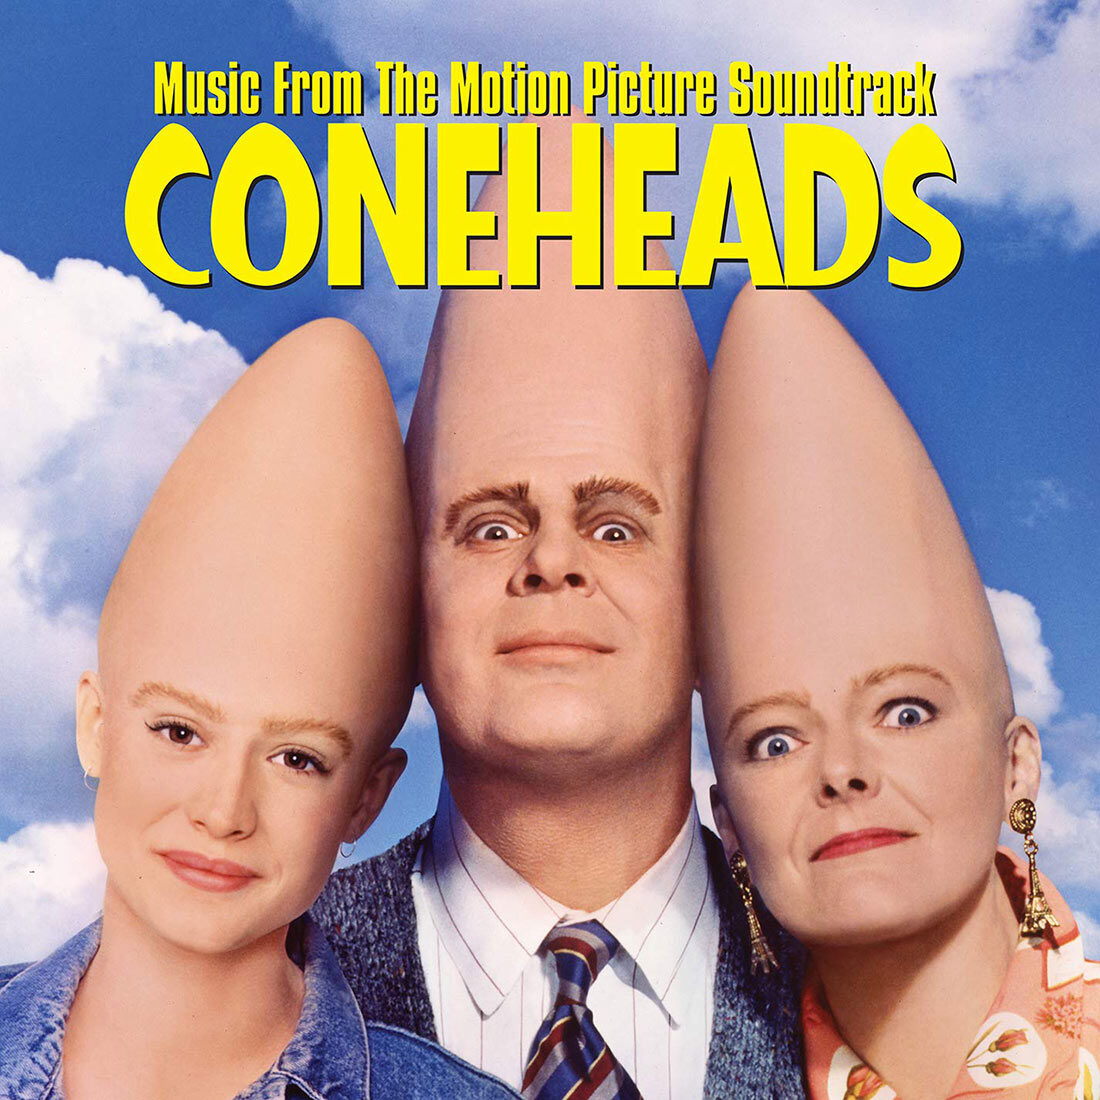 Coneheads Music from the Motion Picture Soundtrack Vinyl Edition